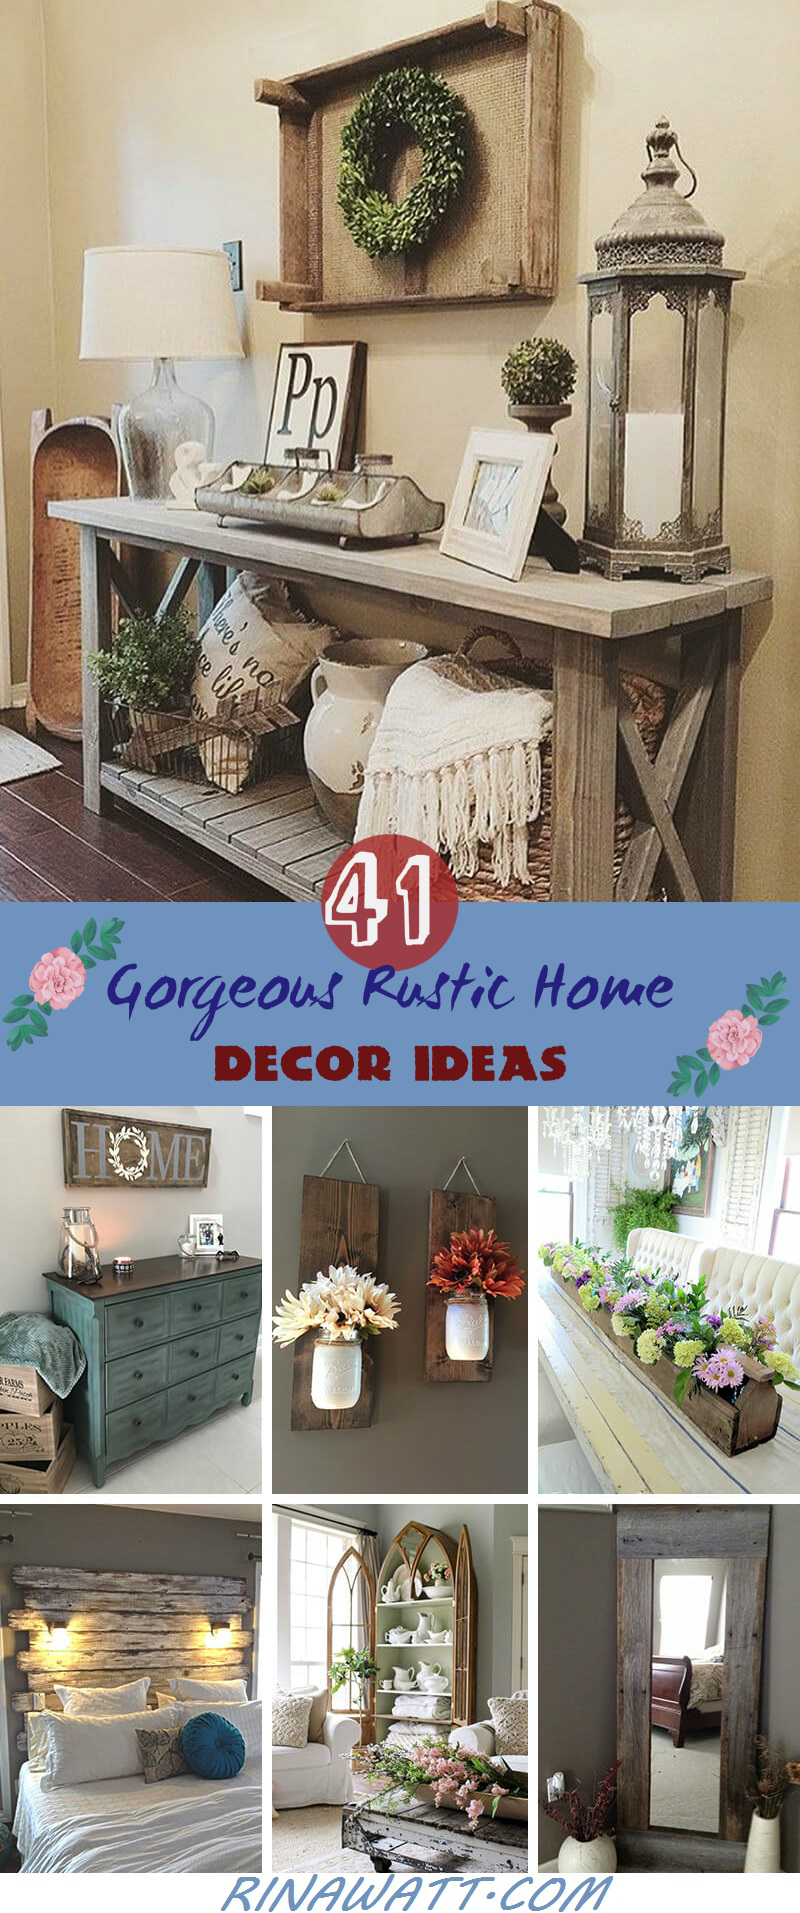 41 Gorgeous Rustic Home Decor Ideas To Make Your Home